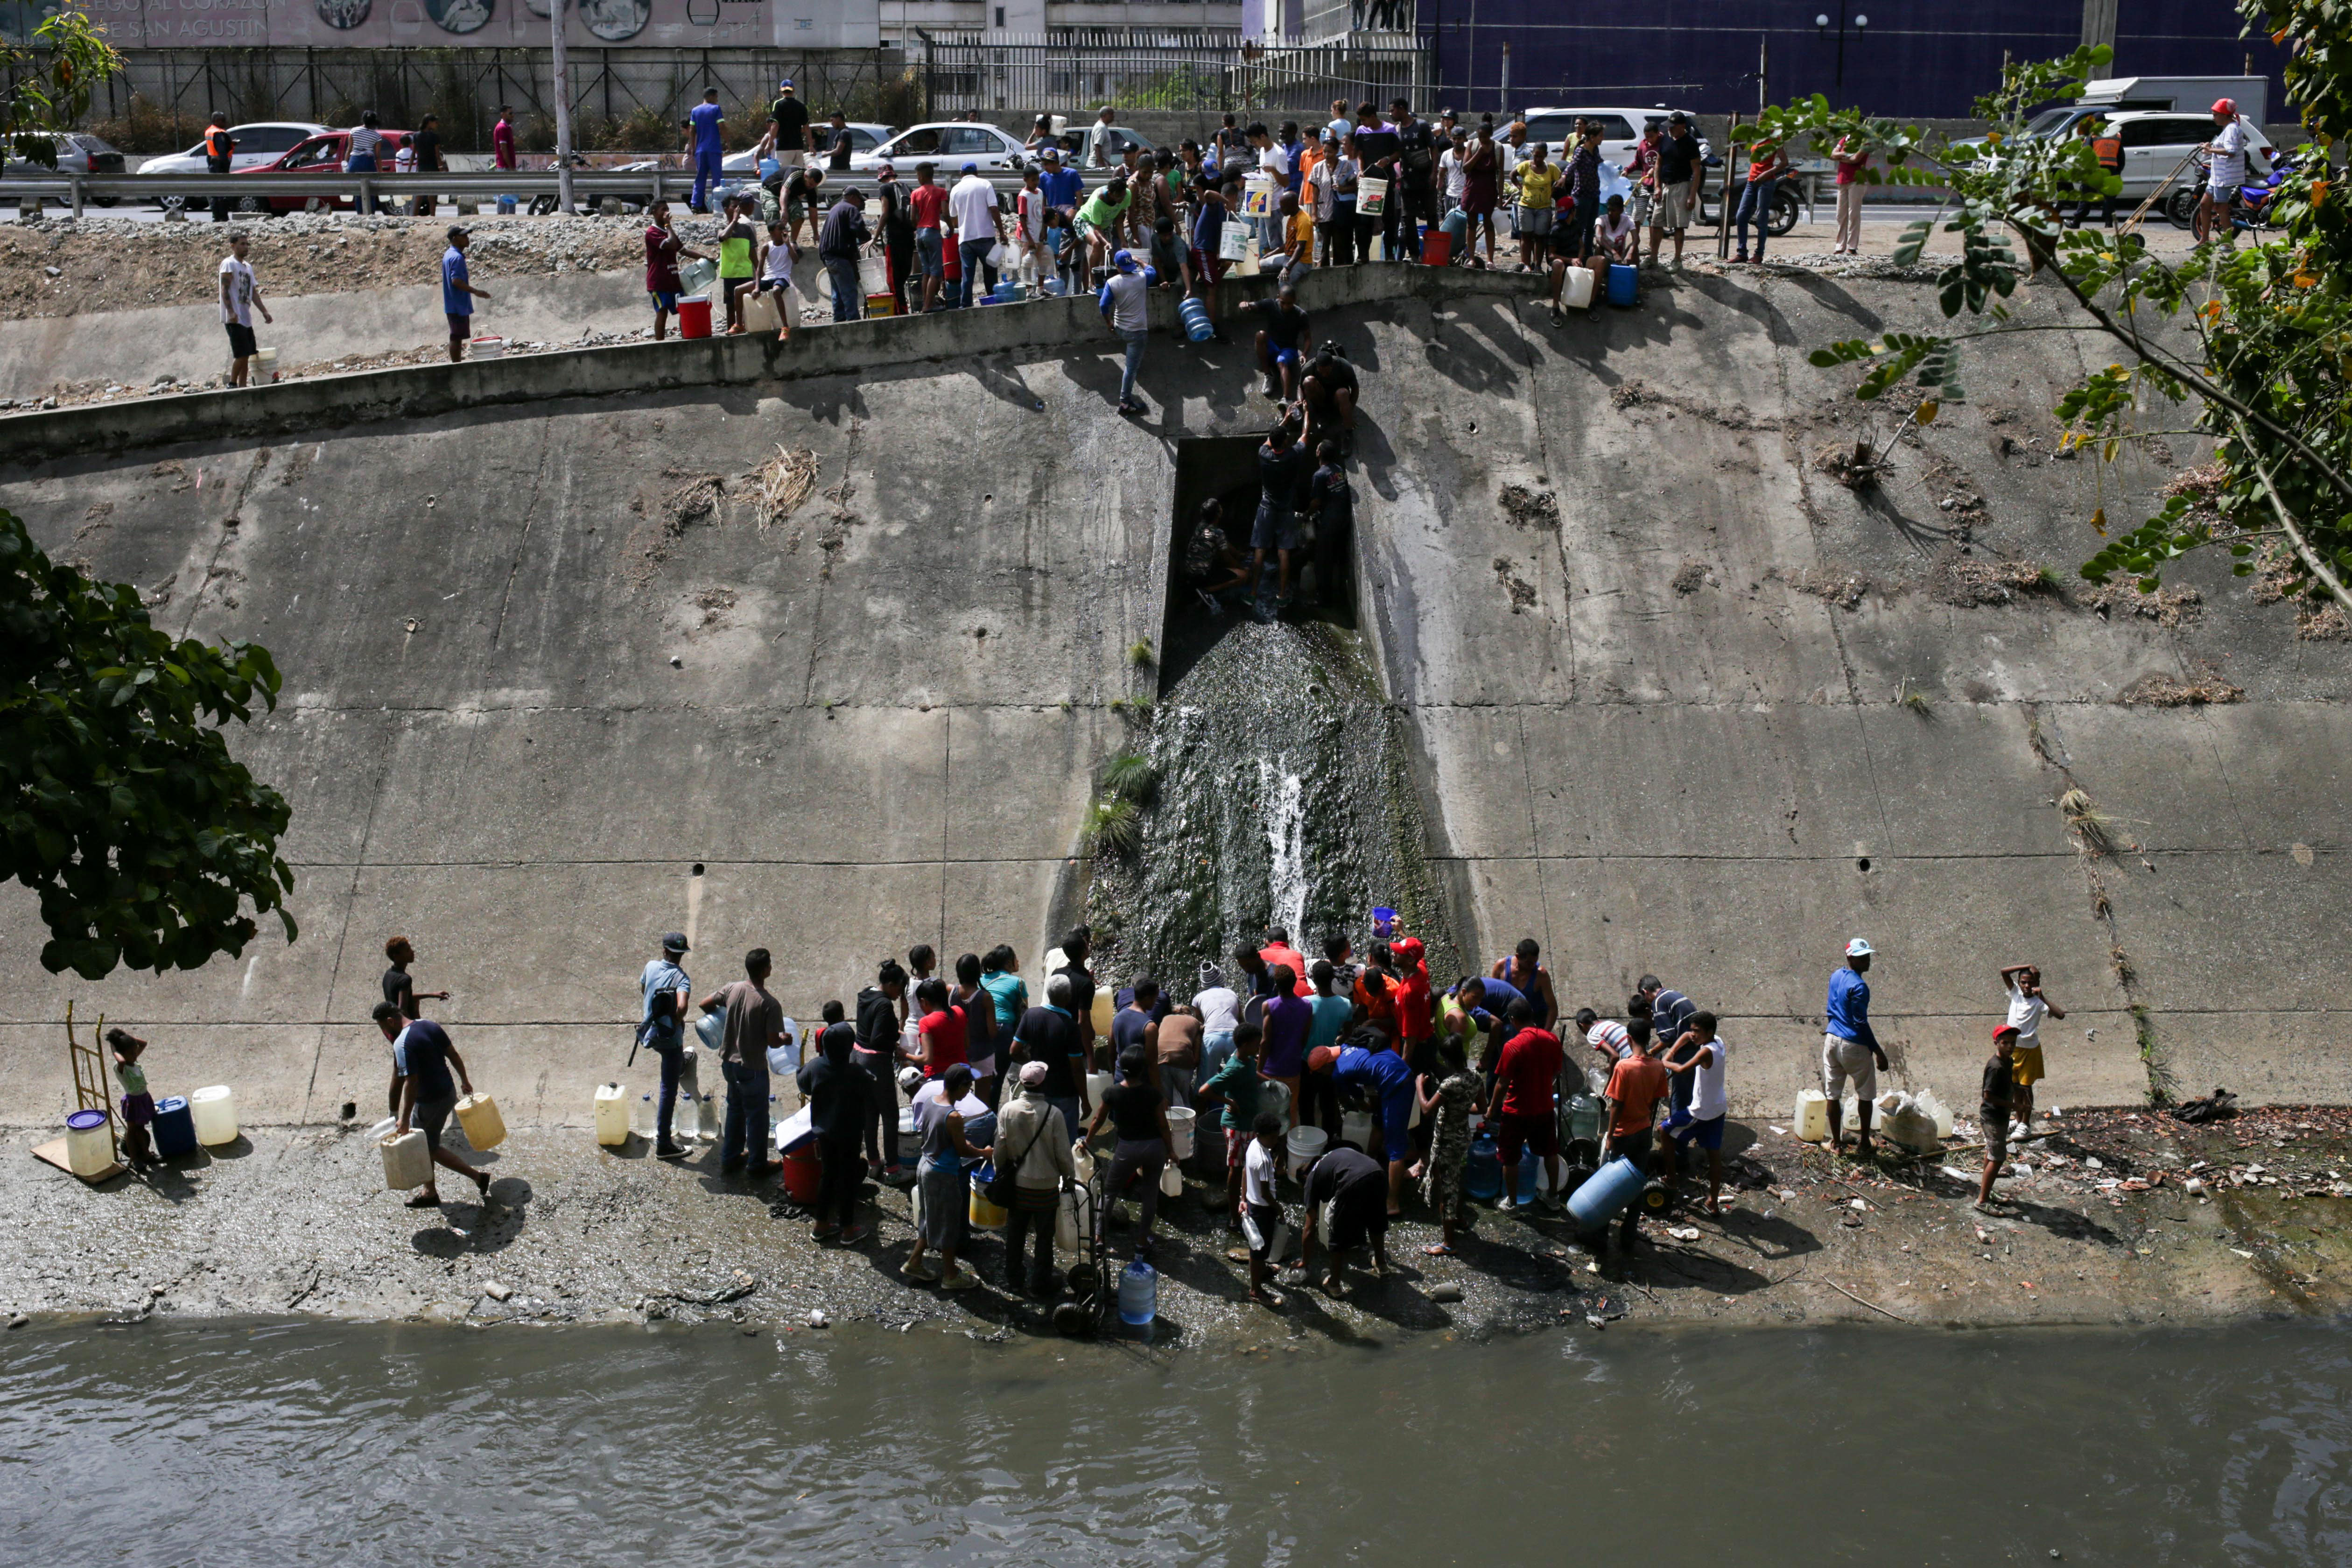 Venezuelans collect water flowing into a sewage canal from a broken pipe at the Guaire River in Caracas on March 11, 2019, as